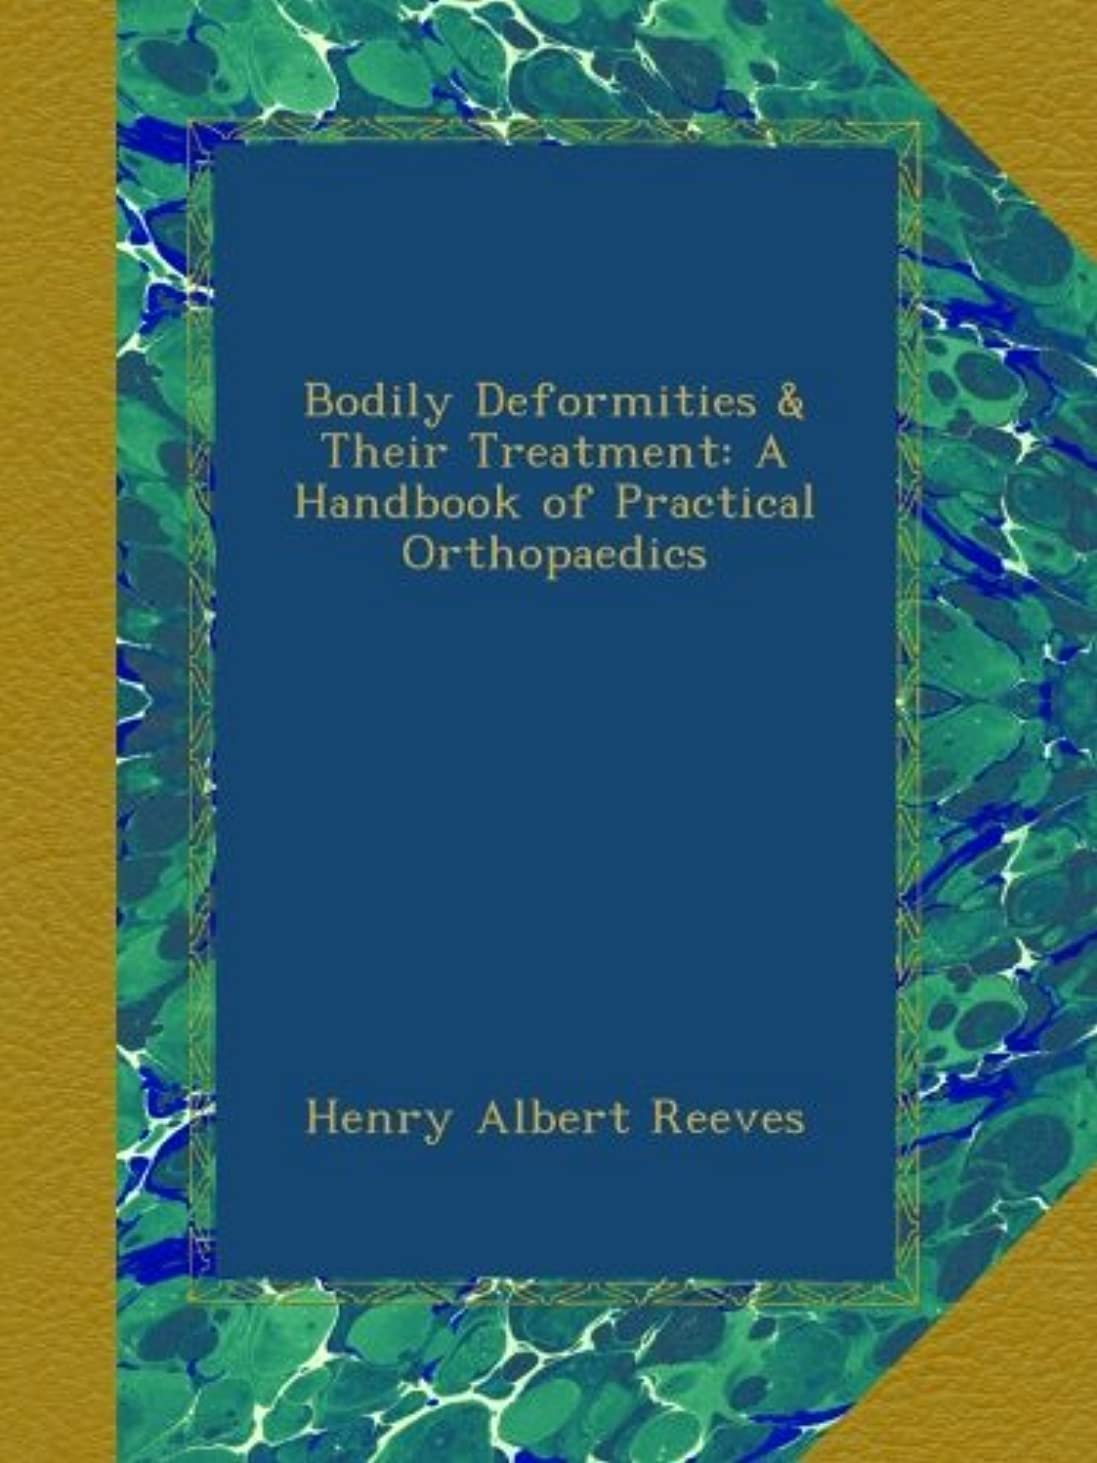 原点淡い形状Bodily Deformities & Their Treatment: A Handbook of Practical Orthopaedics